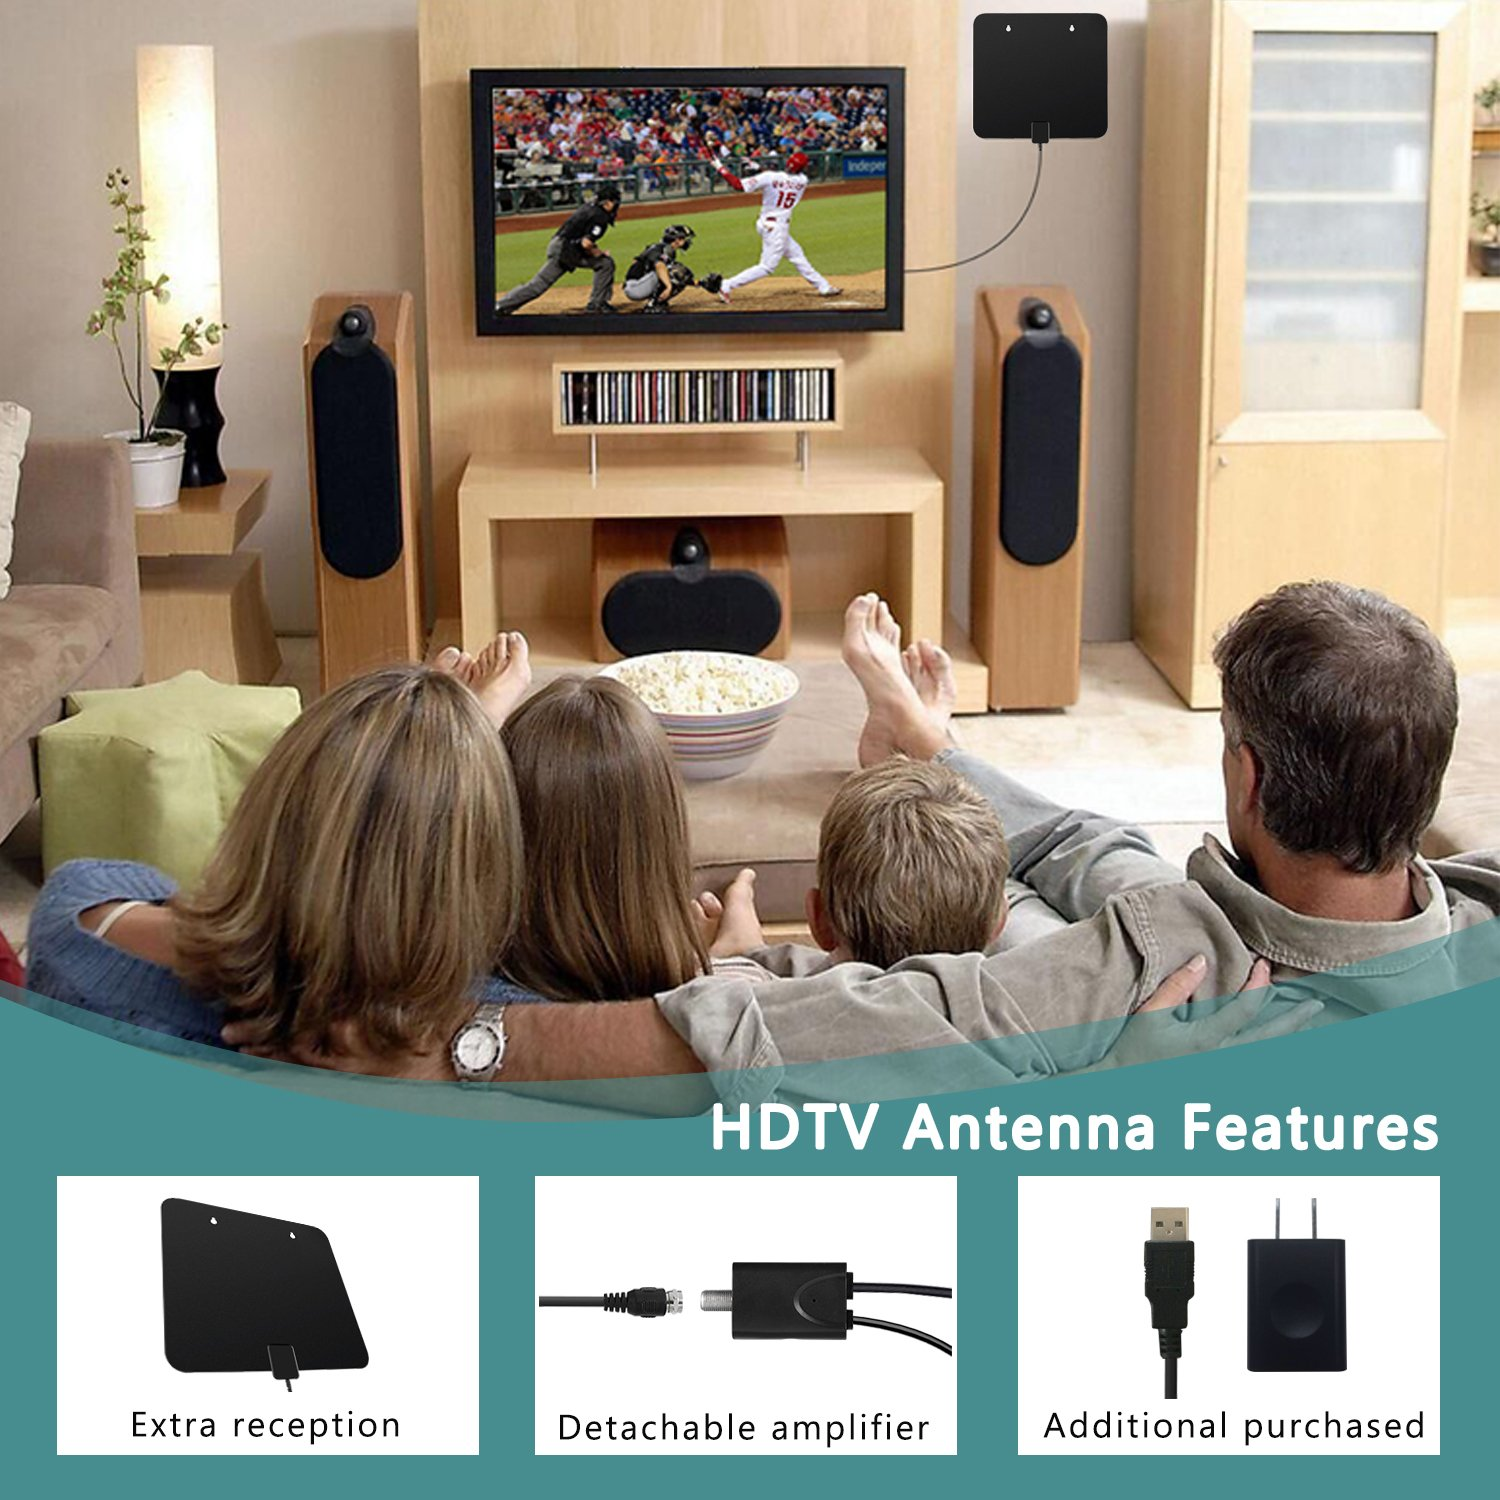 Introduction design amp styling interior performance ride amp handling mpg - Amazon Com Tv Antenna Indoor 60miles Amplified Vichannel 2017 Upgraded Digital Hdtv Antenna With Amplifier Channels Booster Free Tv Gain For 1080p Vhf